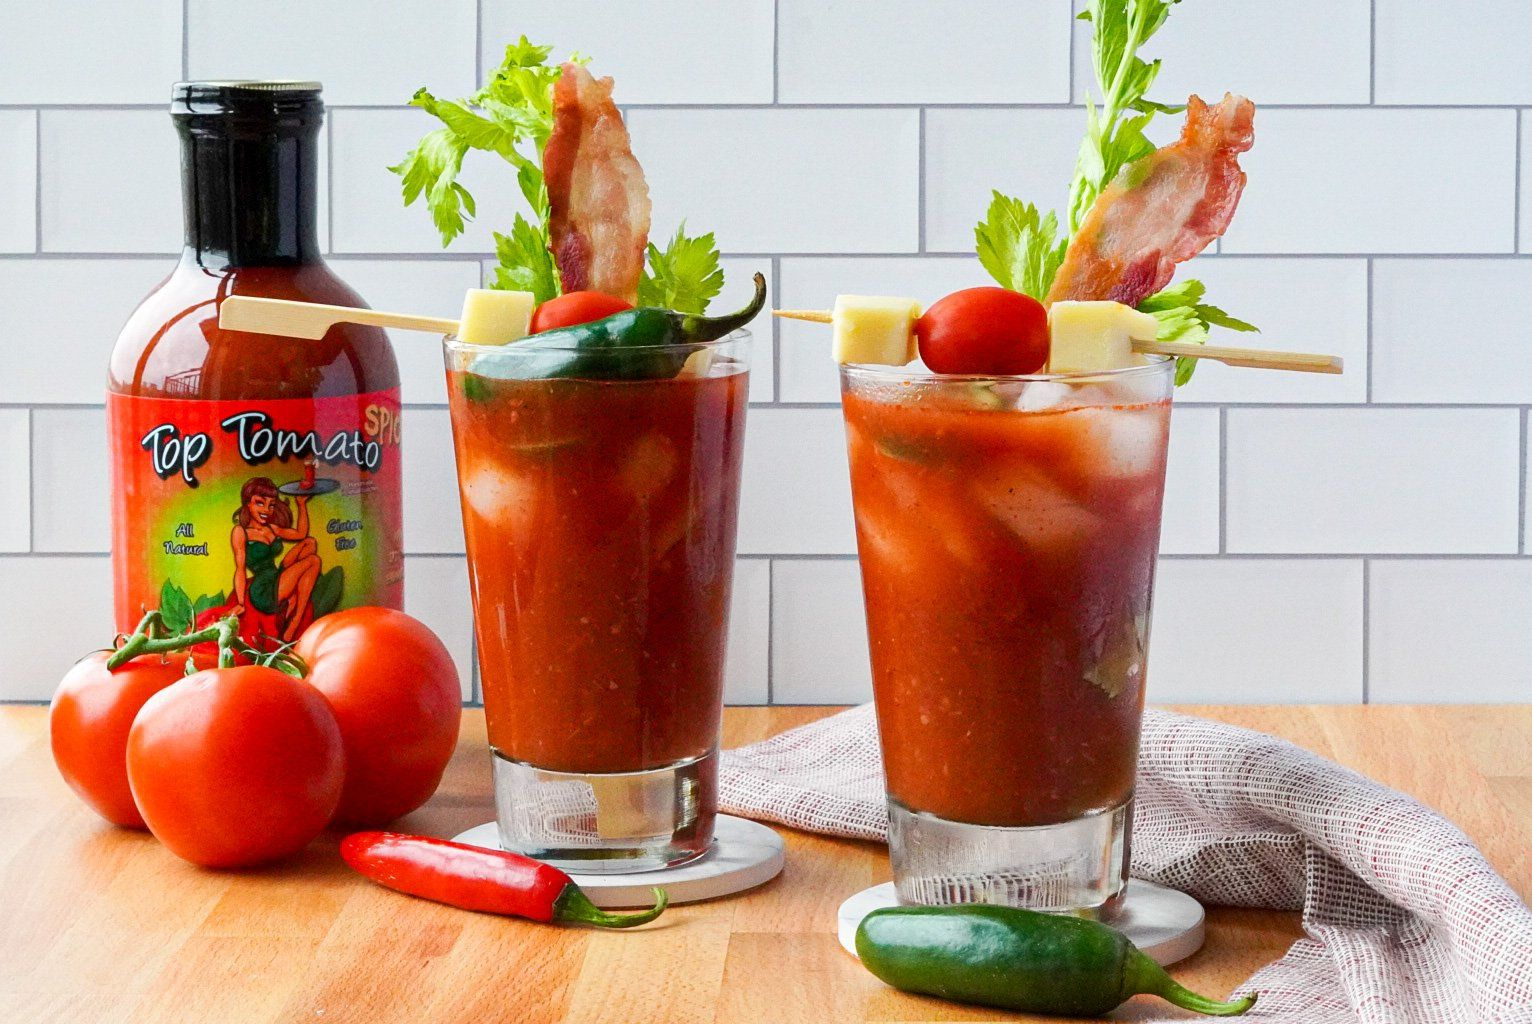 Top Tomato Spicy Bloody Mary